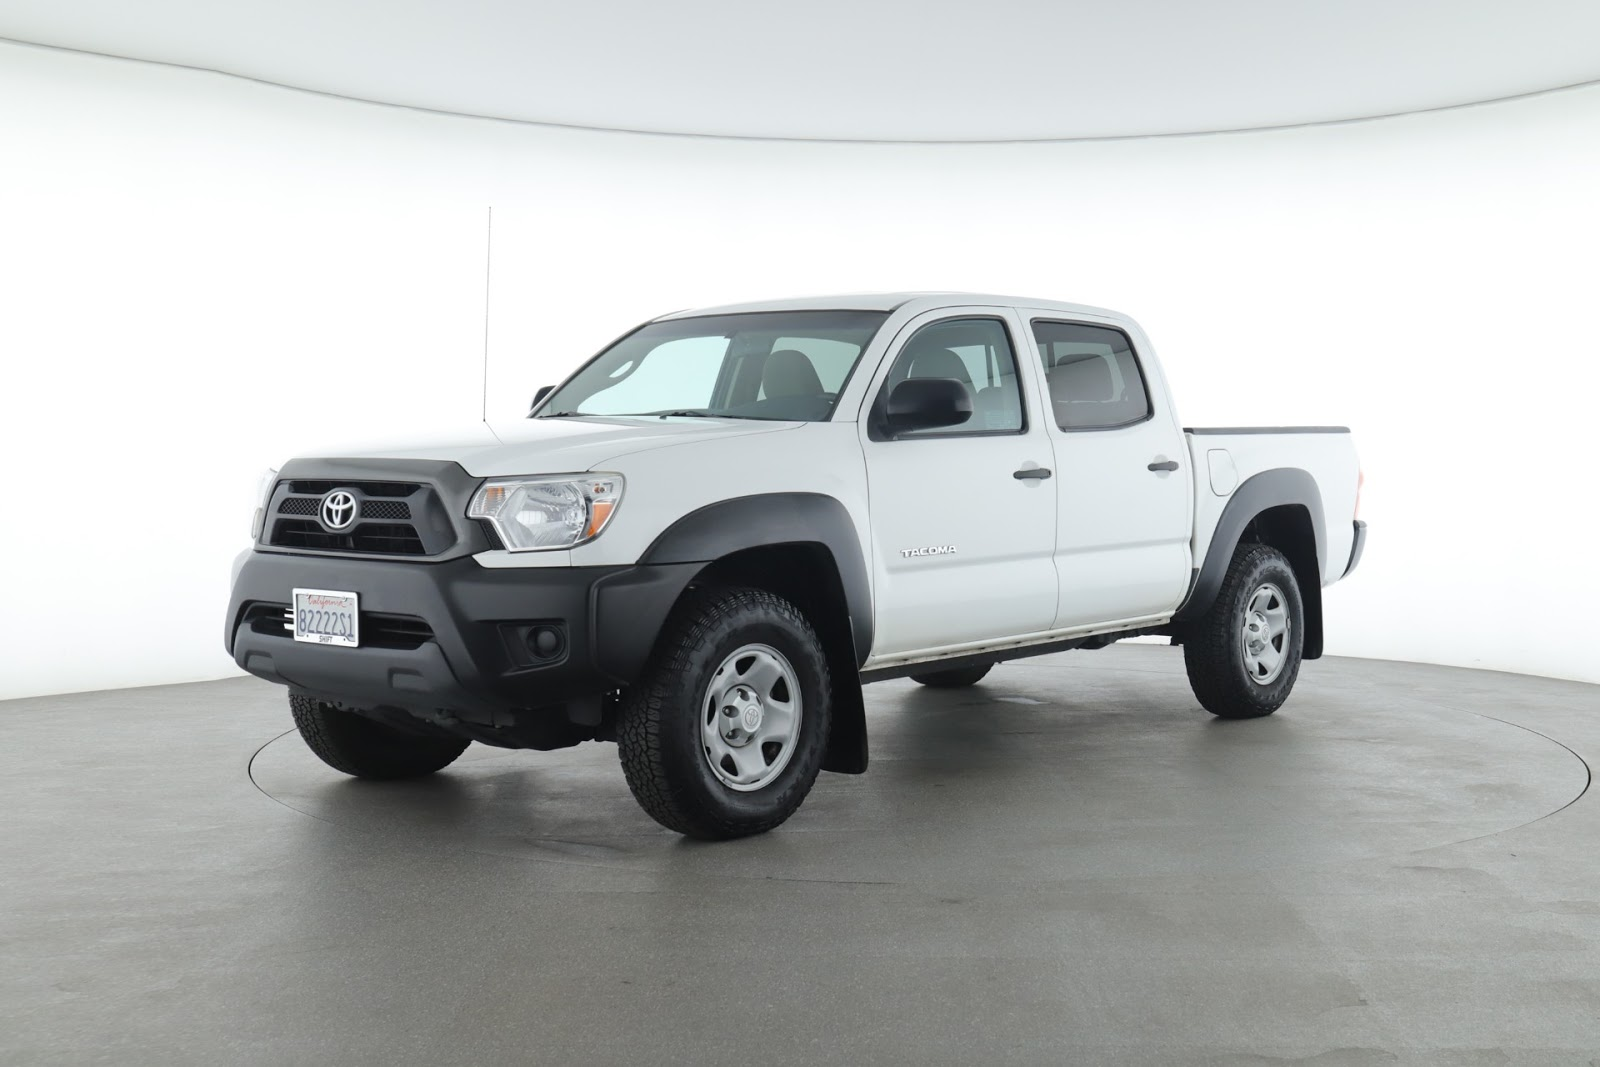 2015 Toyota Tacoma PreRunner (from $23,000)